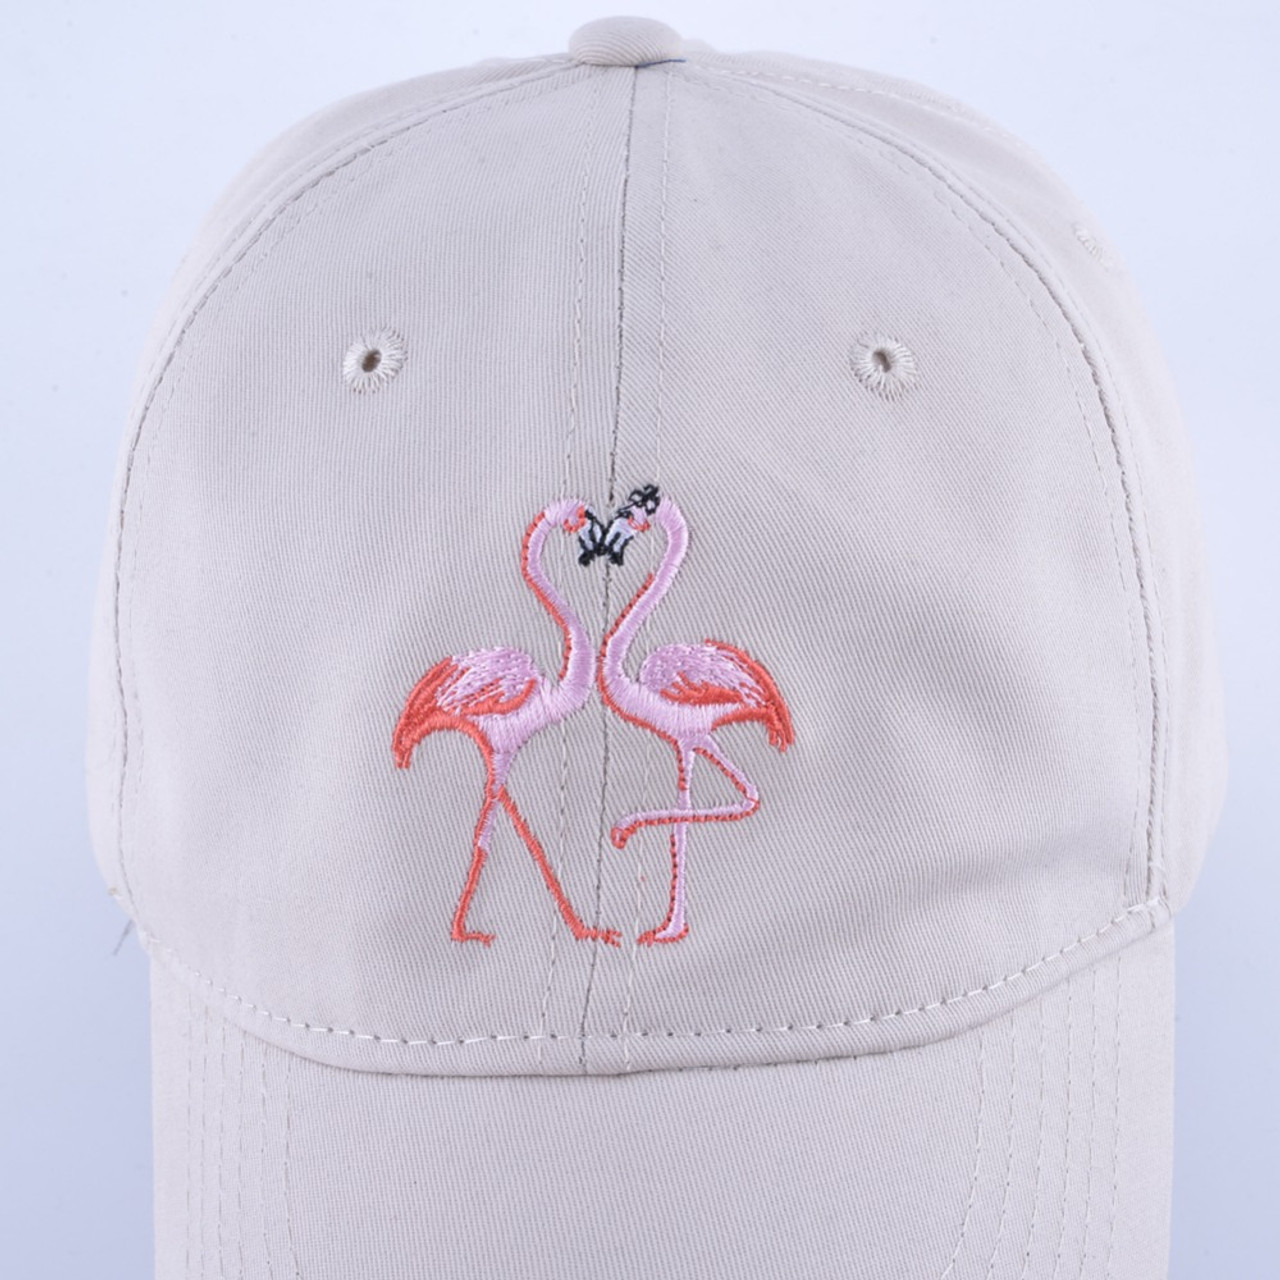 7ae16b9d685 ... New Fashion Unisex Snapback Sun Hat Flamingoe Embroidery Cotton Baseball  Caps Women Men Solid Color Dad ...